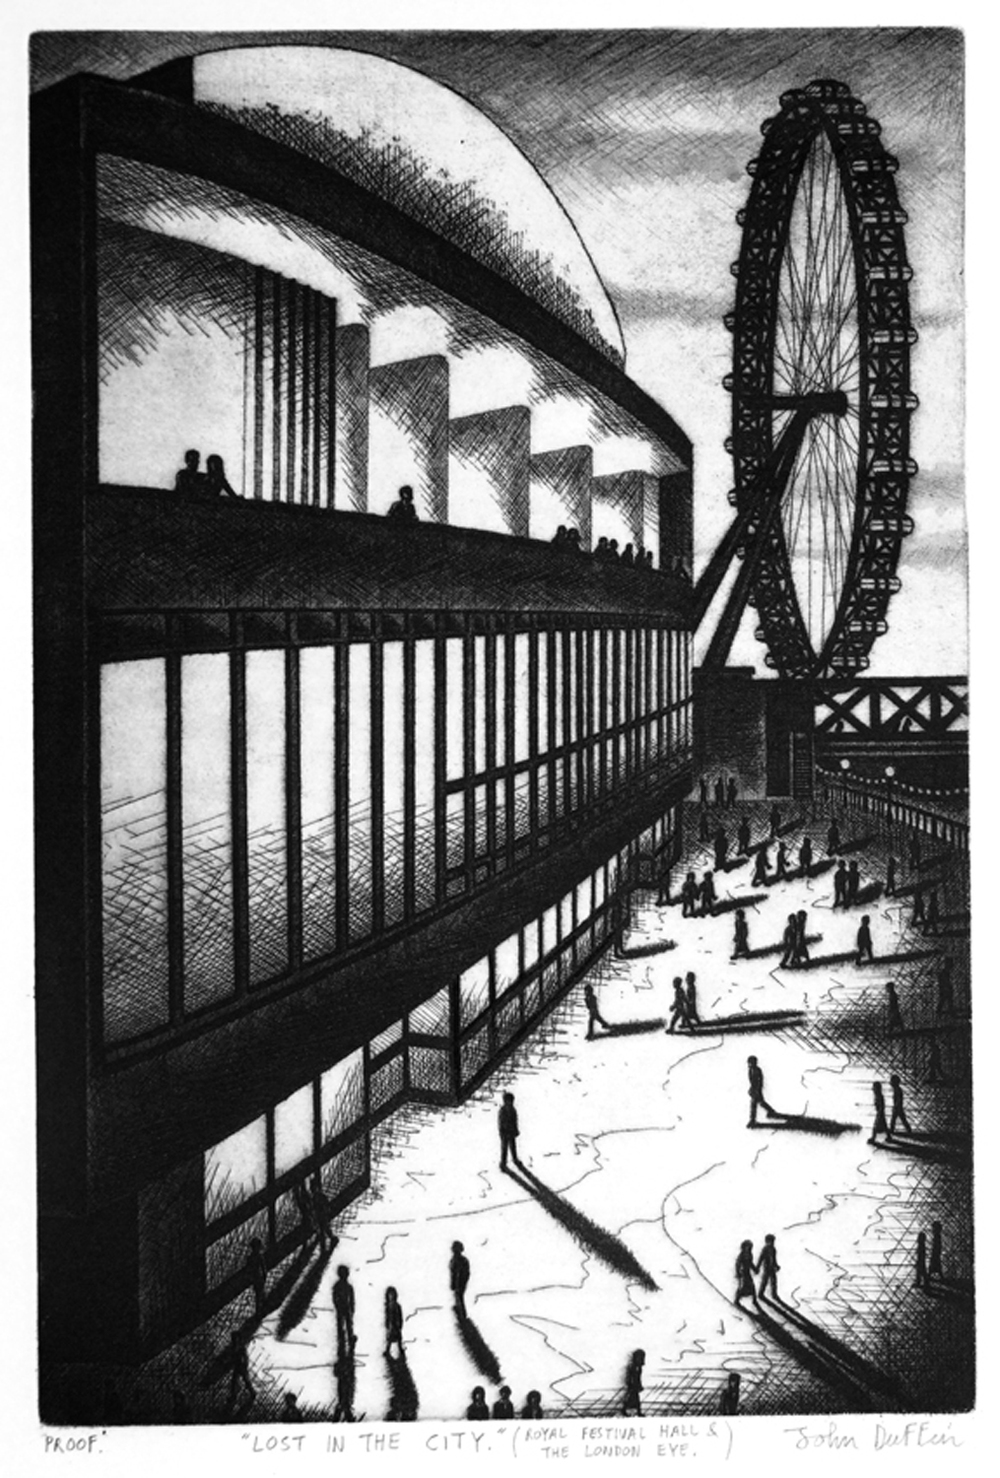 Lost in the City (Royal Festival Hall & The London Eye) etching